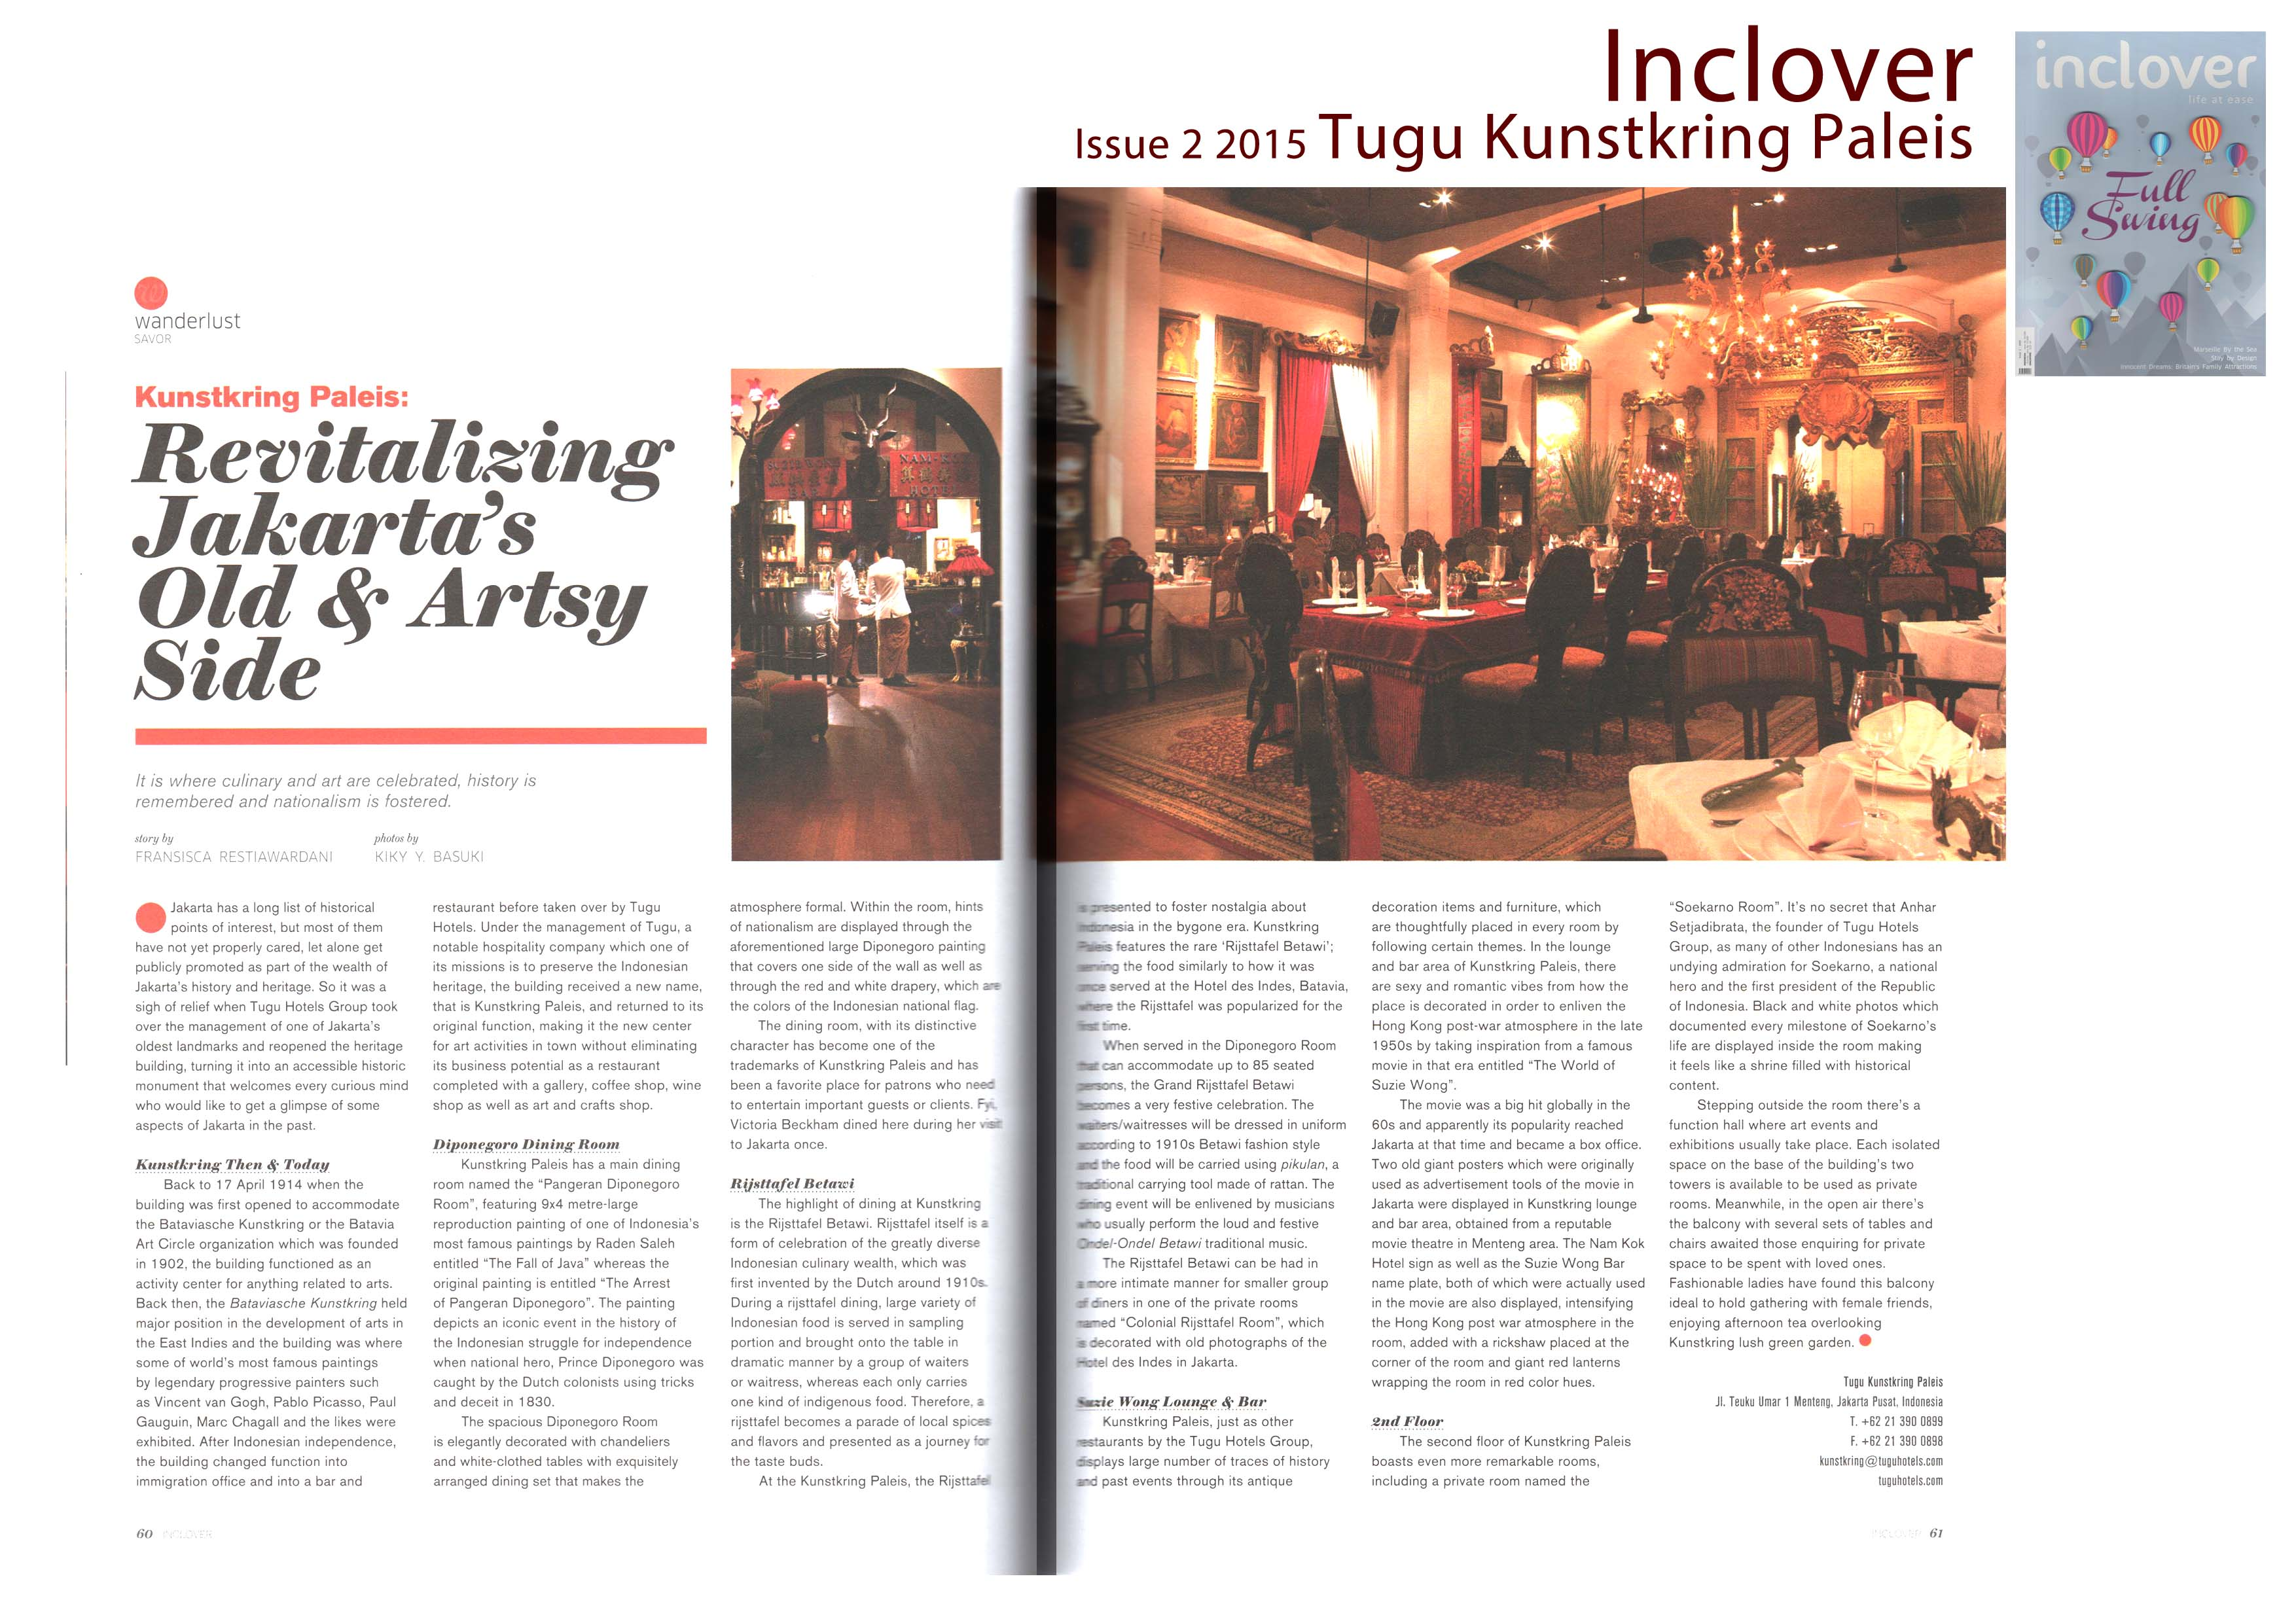 Revitalizing Jakarta's Old & Artsy Side - Kunstkring Paleis - Inclover Issue 2 2015